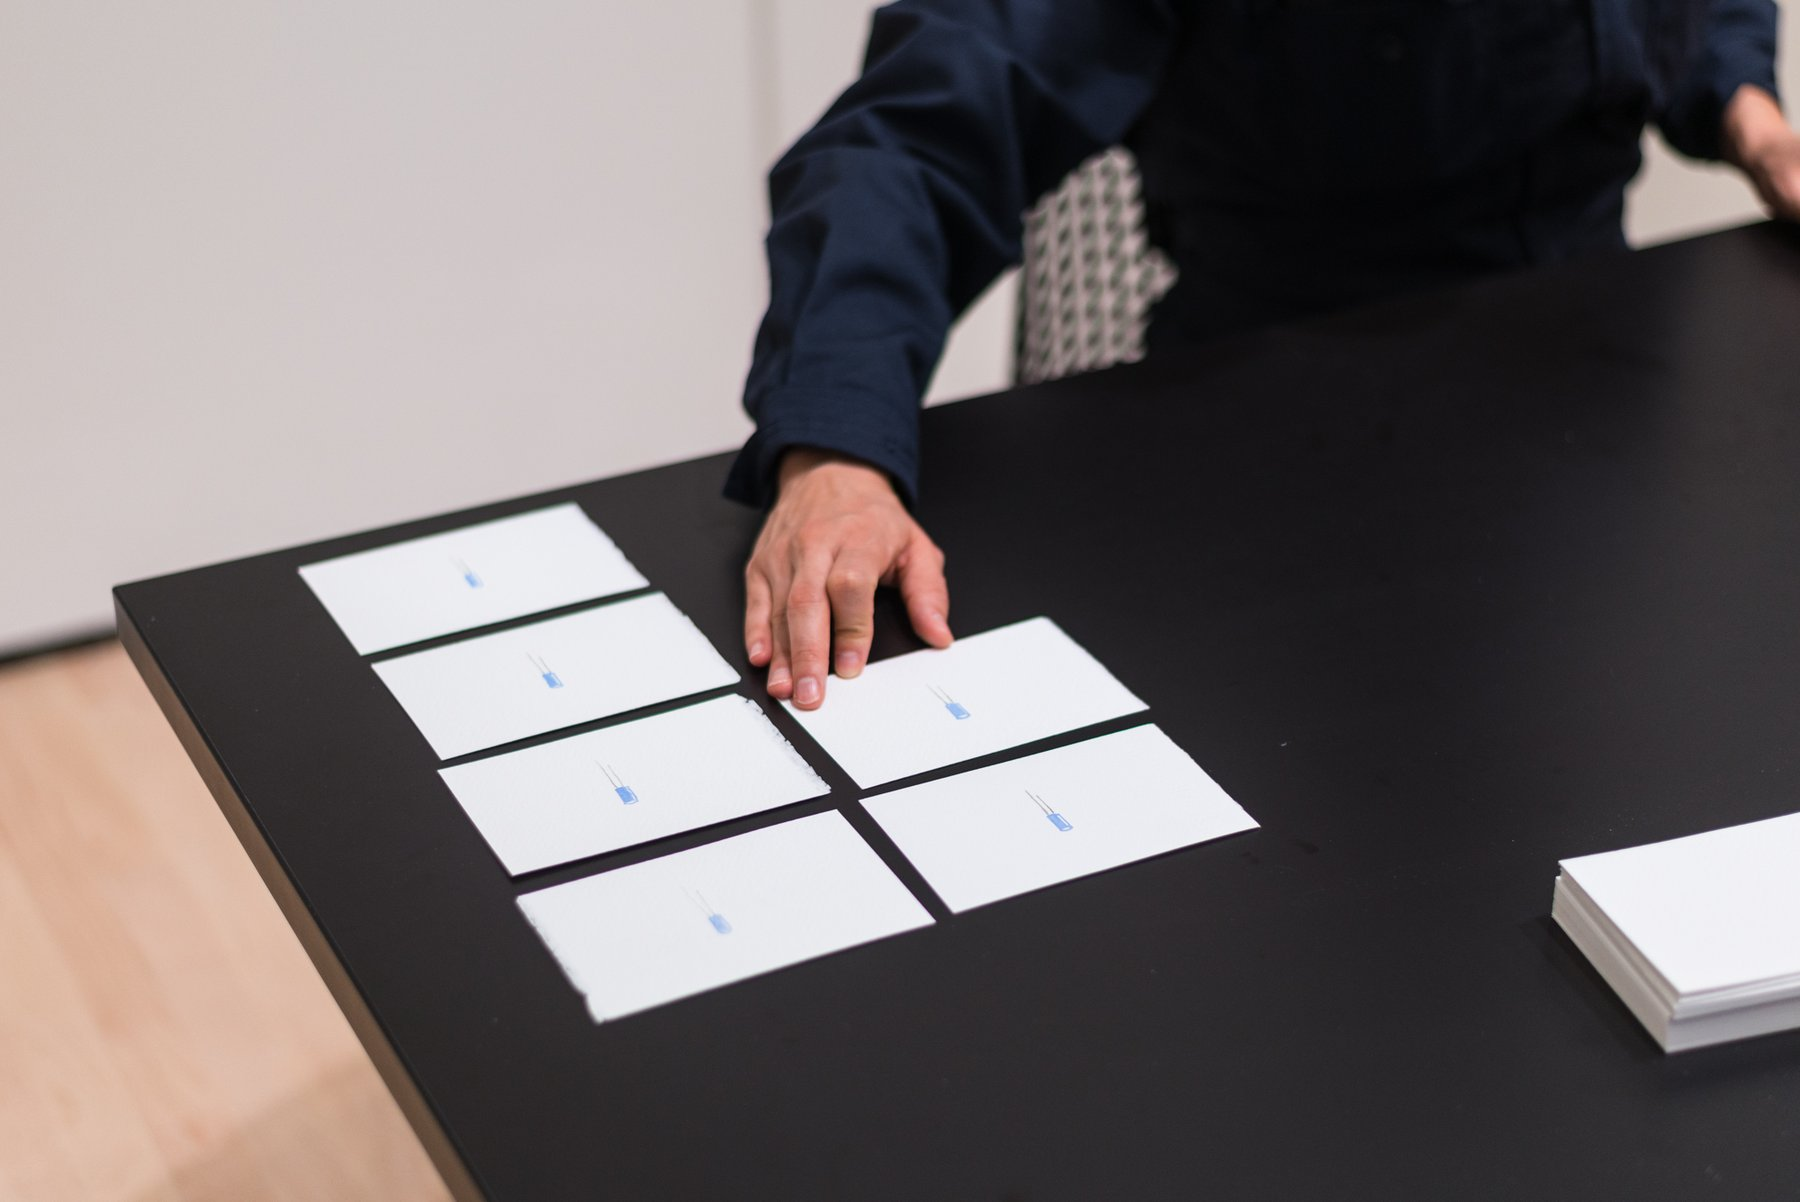 A hand arranges rectangular white cards on a black table, Munoz, Sountracks